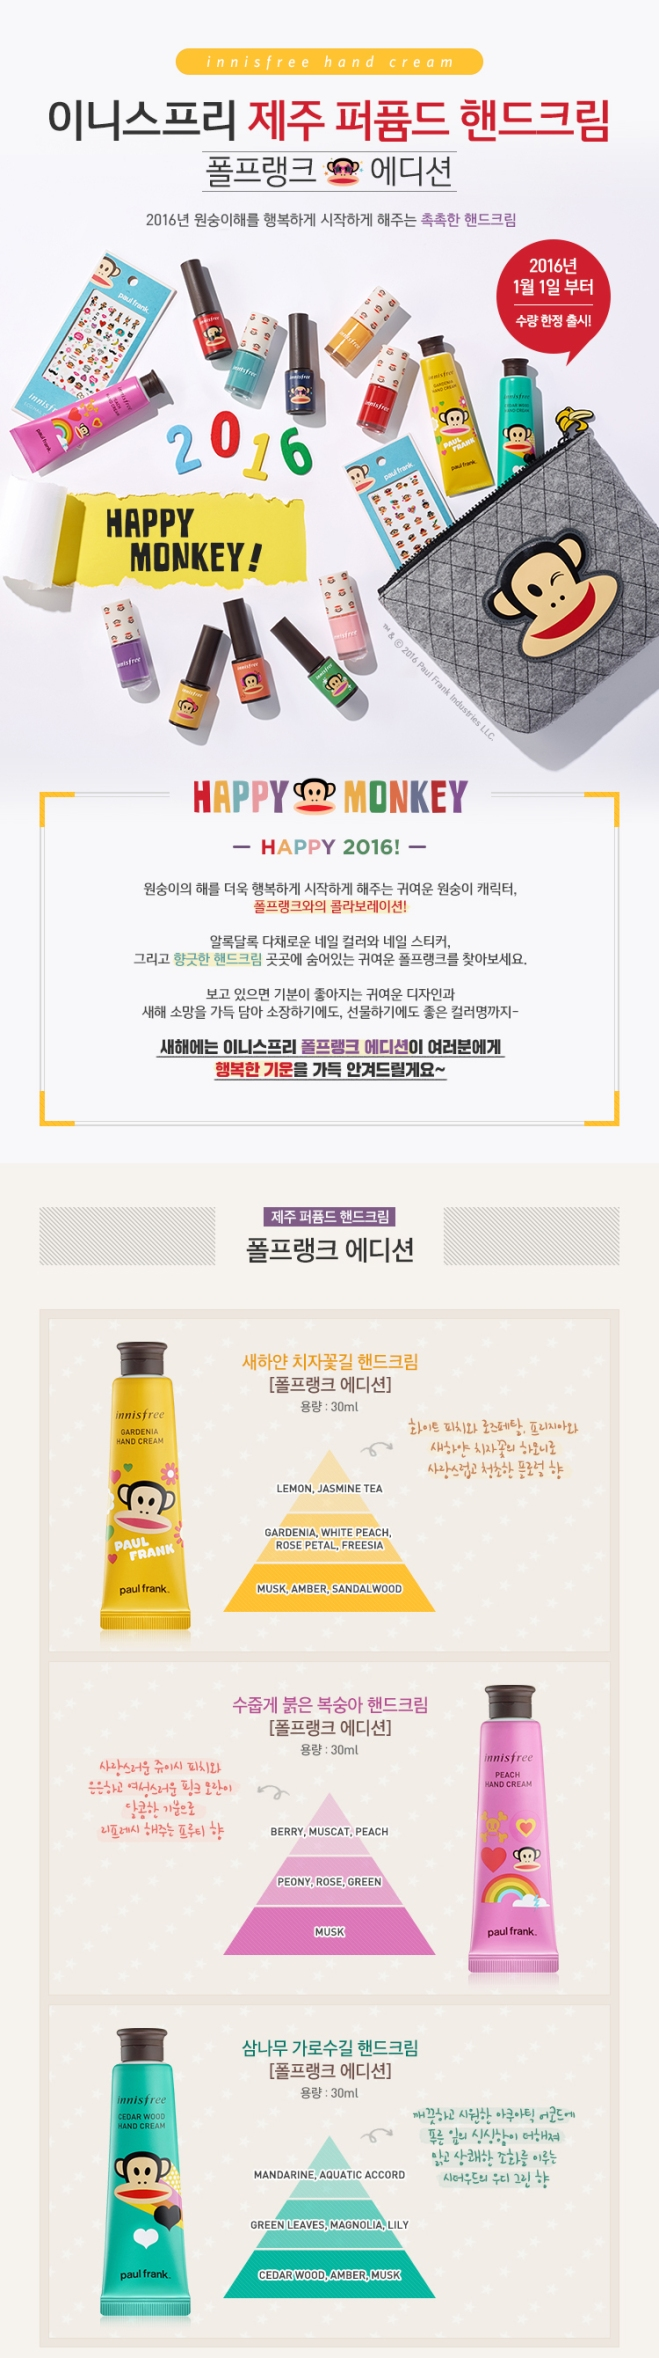 Innisfree x Paul Frank Hand Cream.jpg